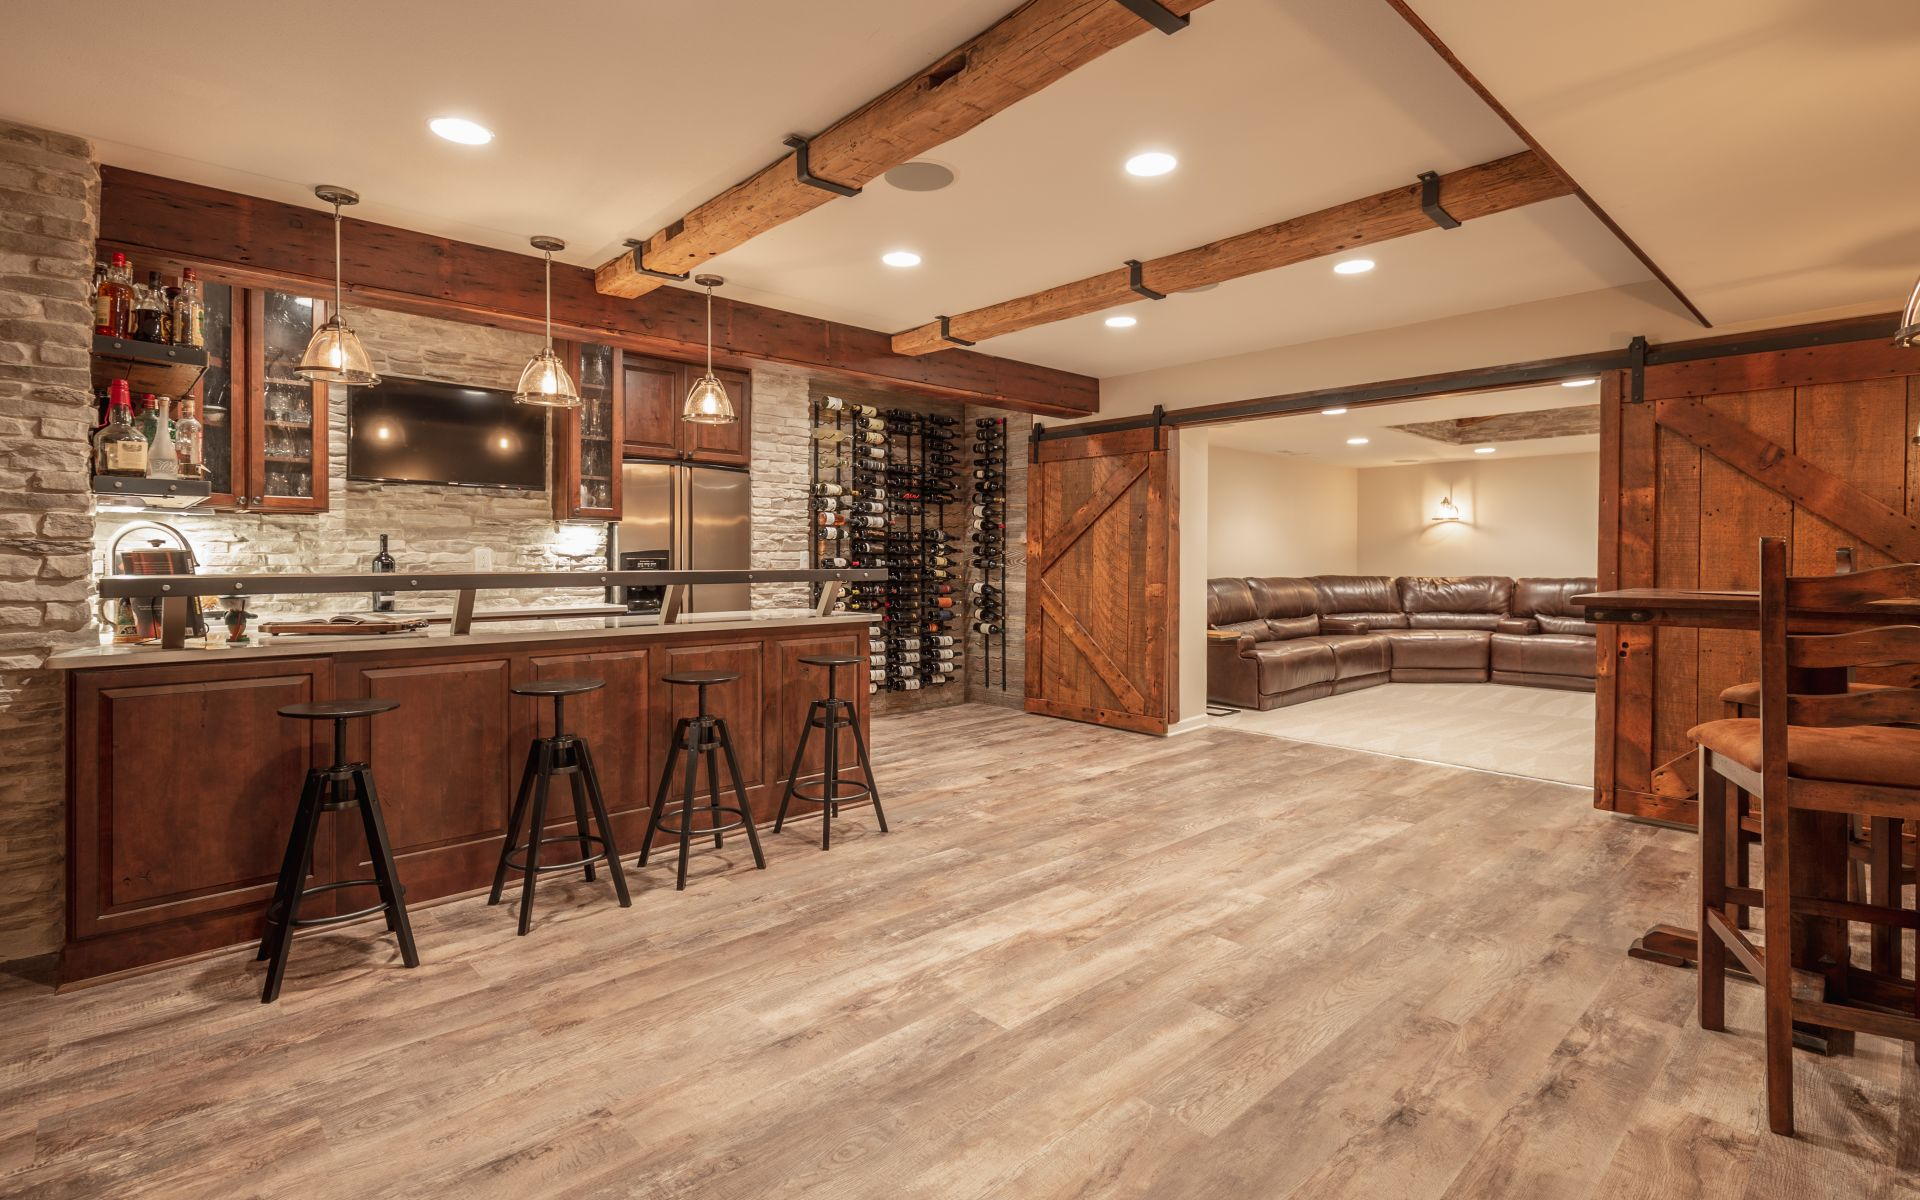 Rustic Chic Remodel in Muskego For Sale